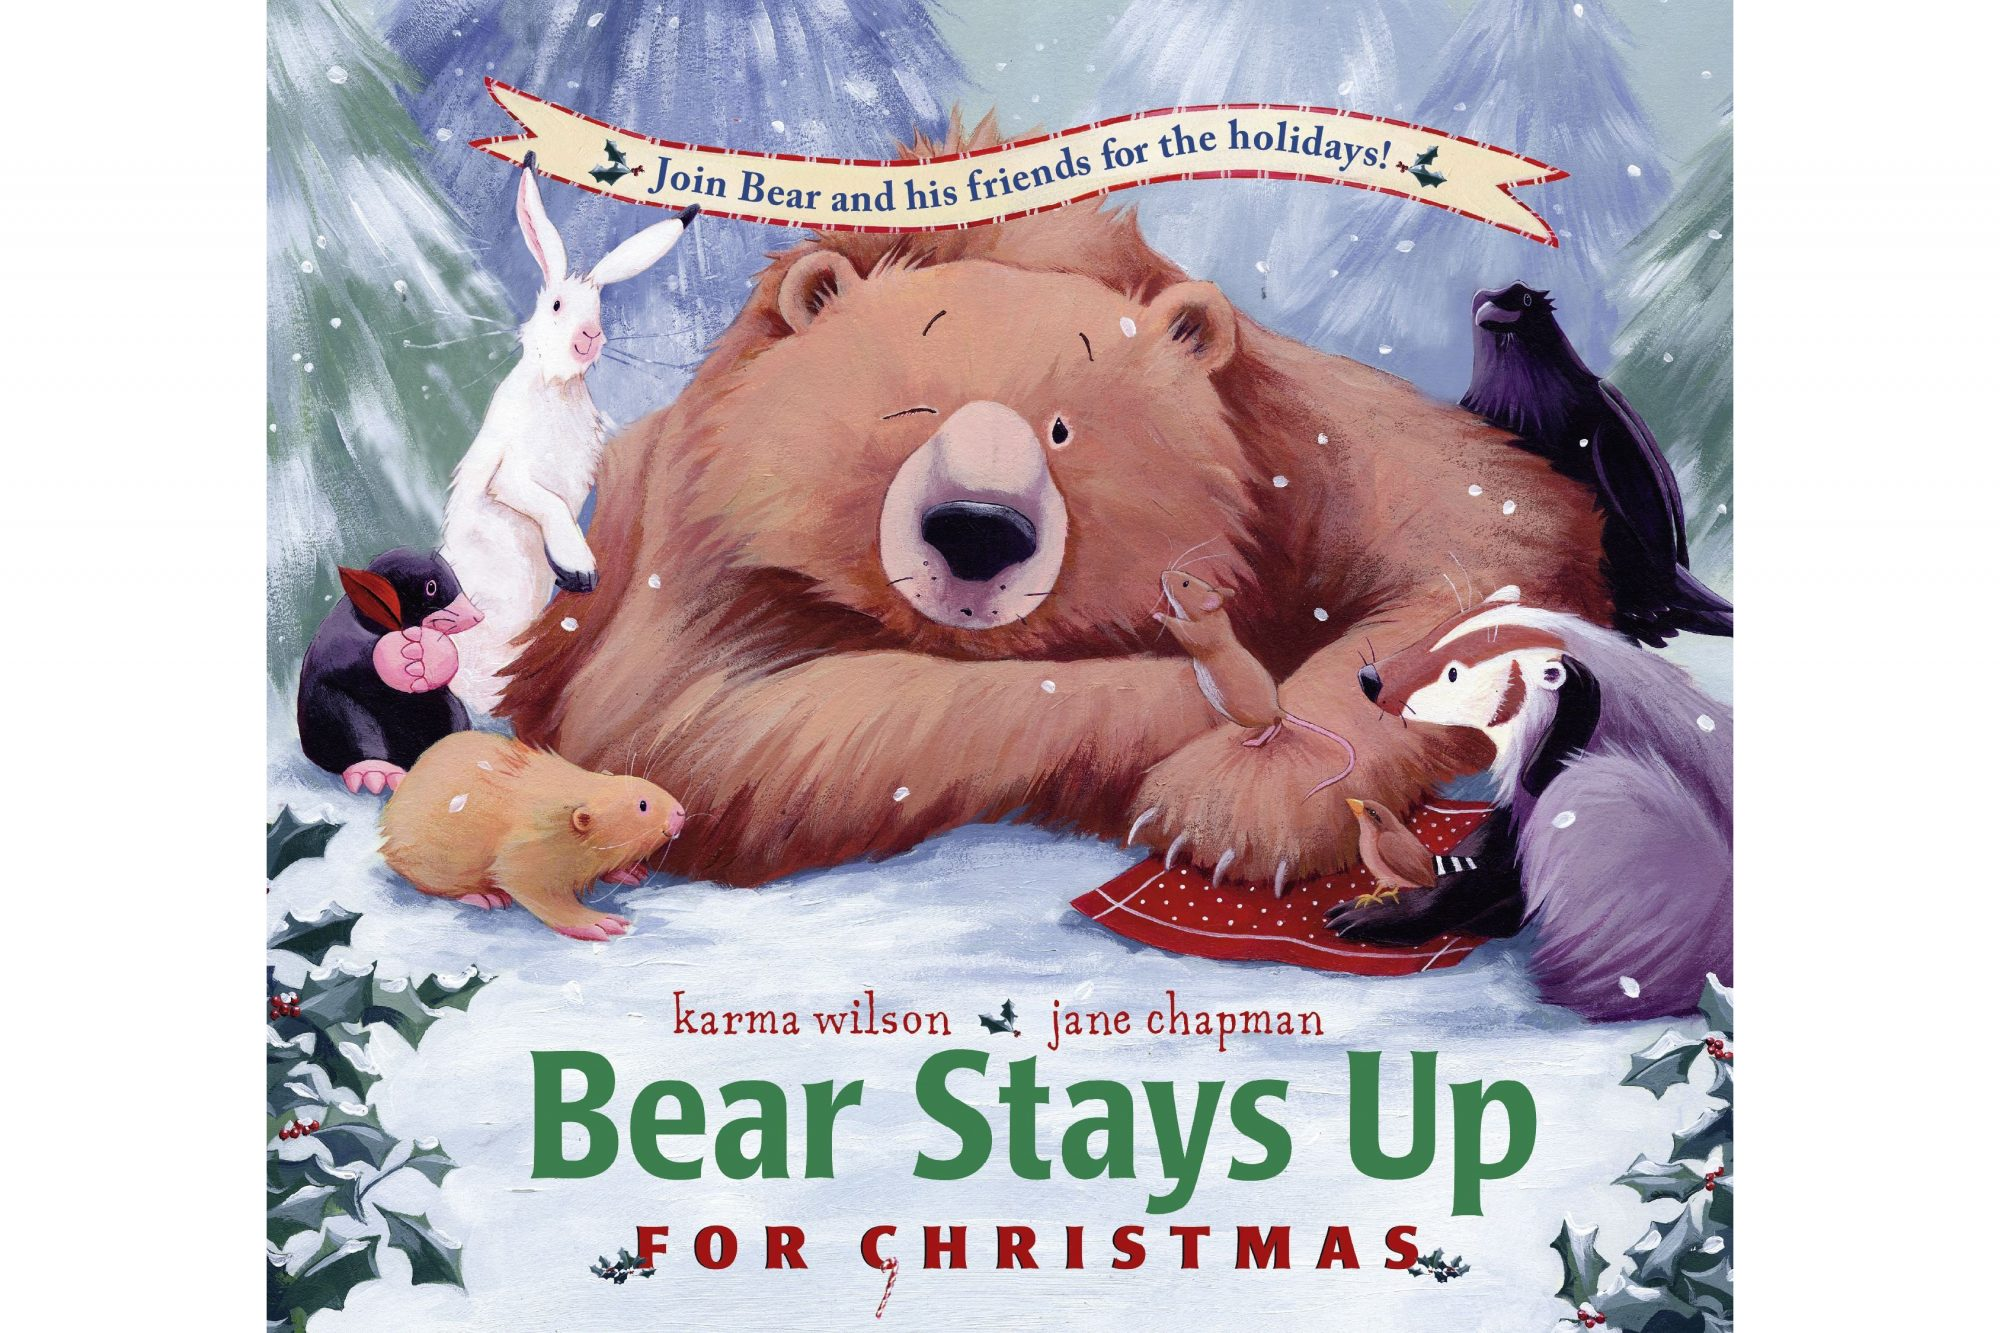 Bear Stays Up for Christmas, by Karma Wilson and Jane Chapman